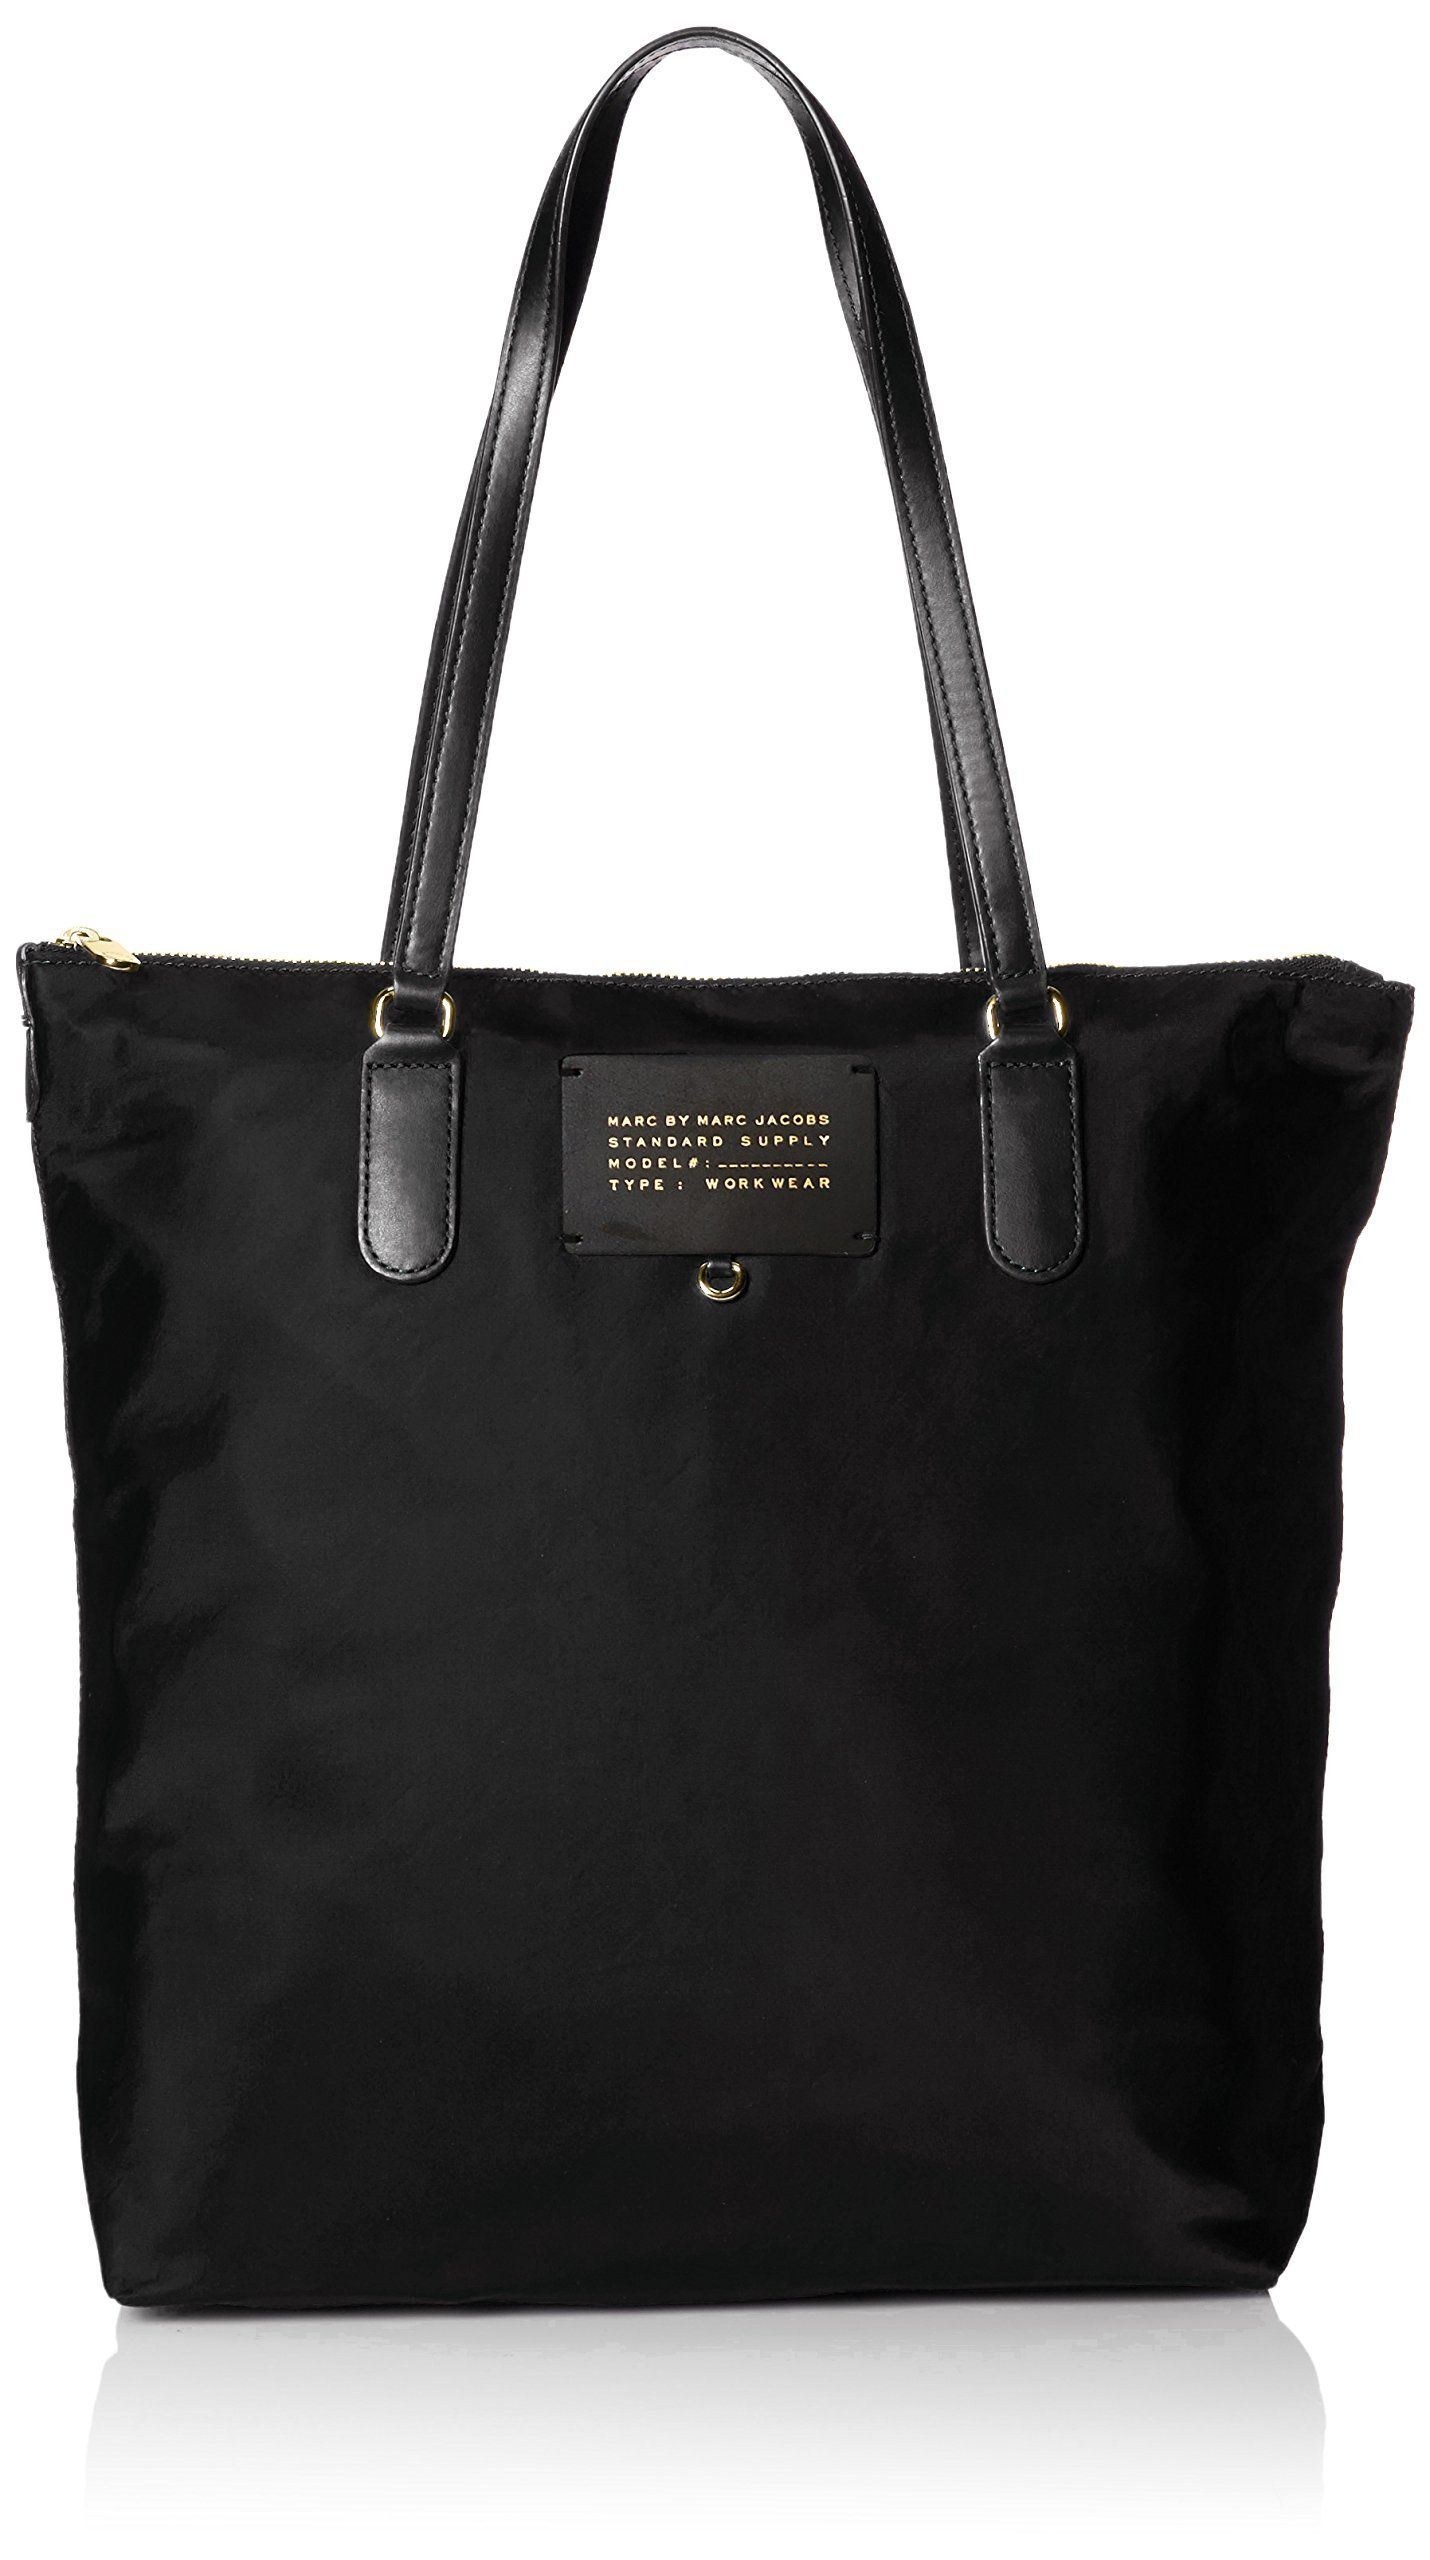 c7dfada14 Marc by Marc Jacobs Preppy Legend Top Zip Tote Bag, Black, One Size ...